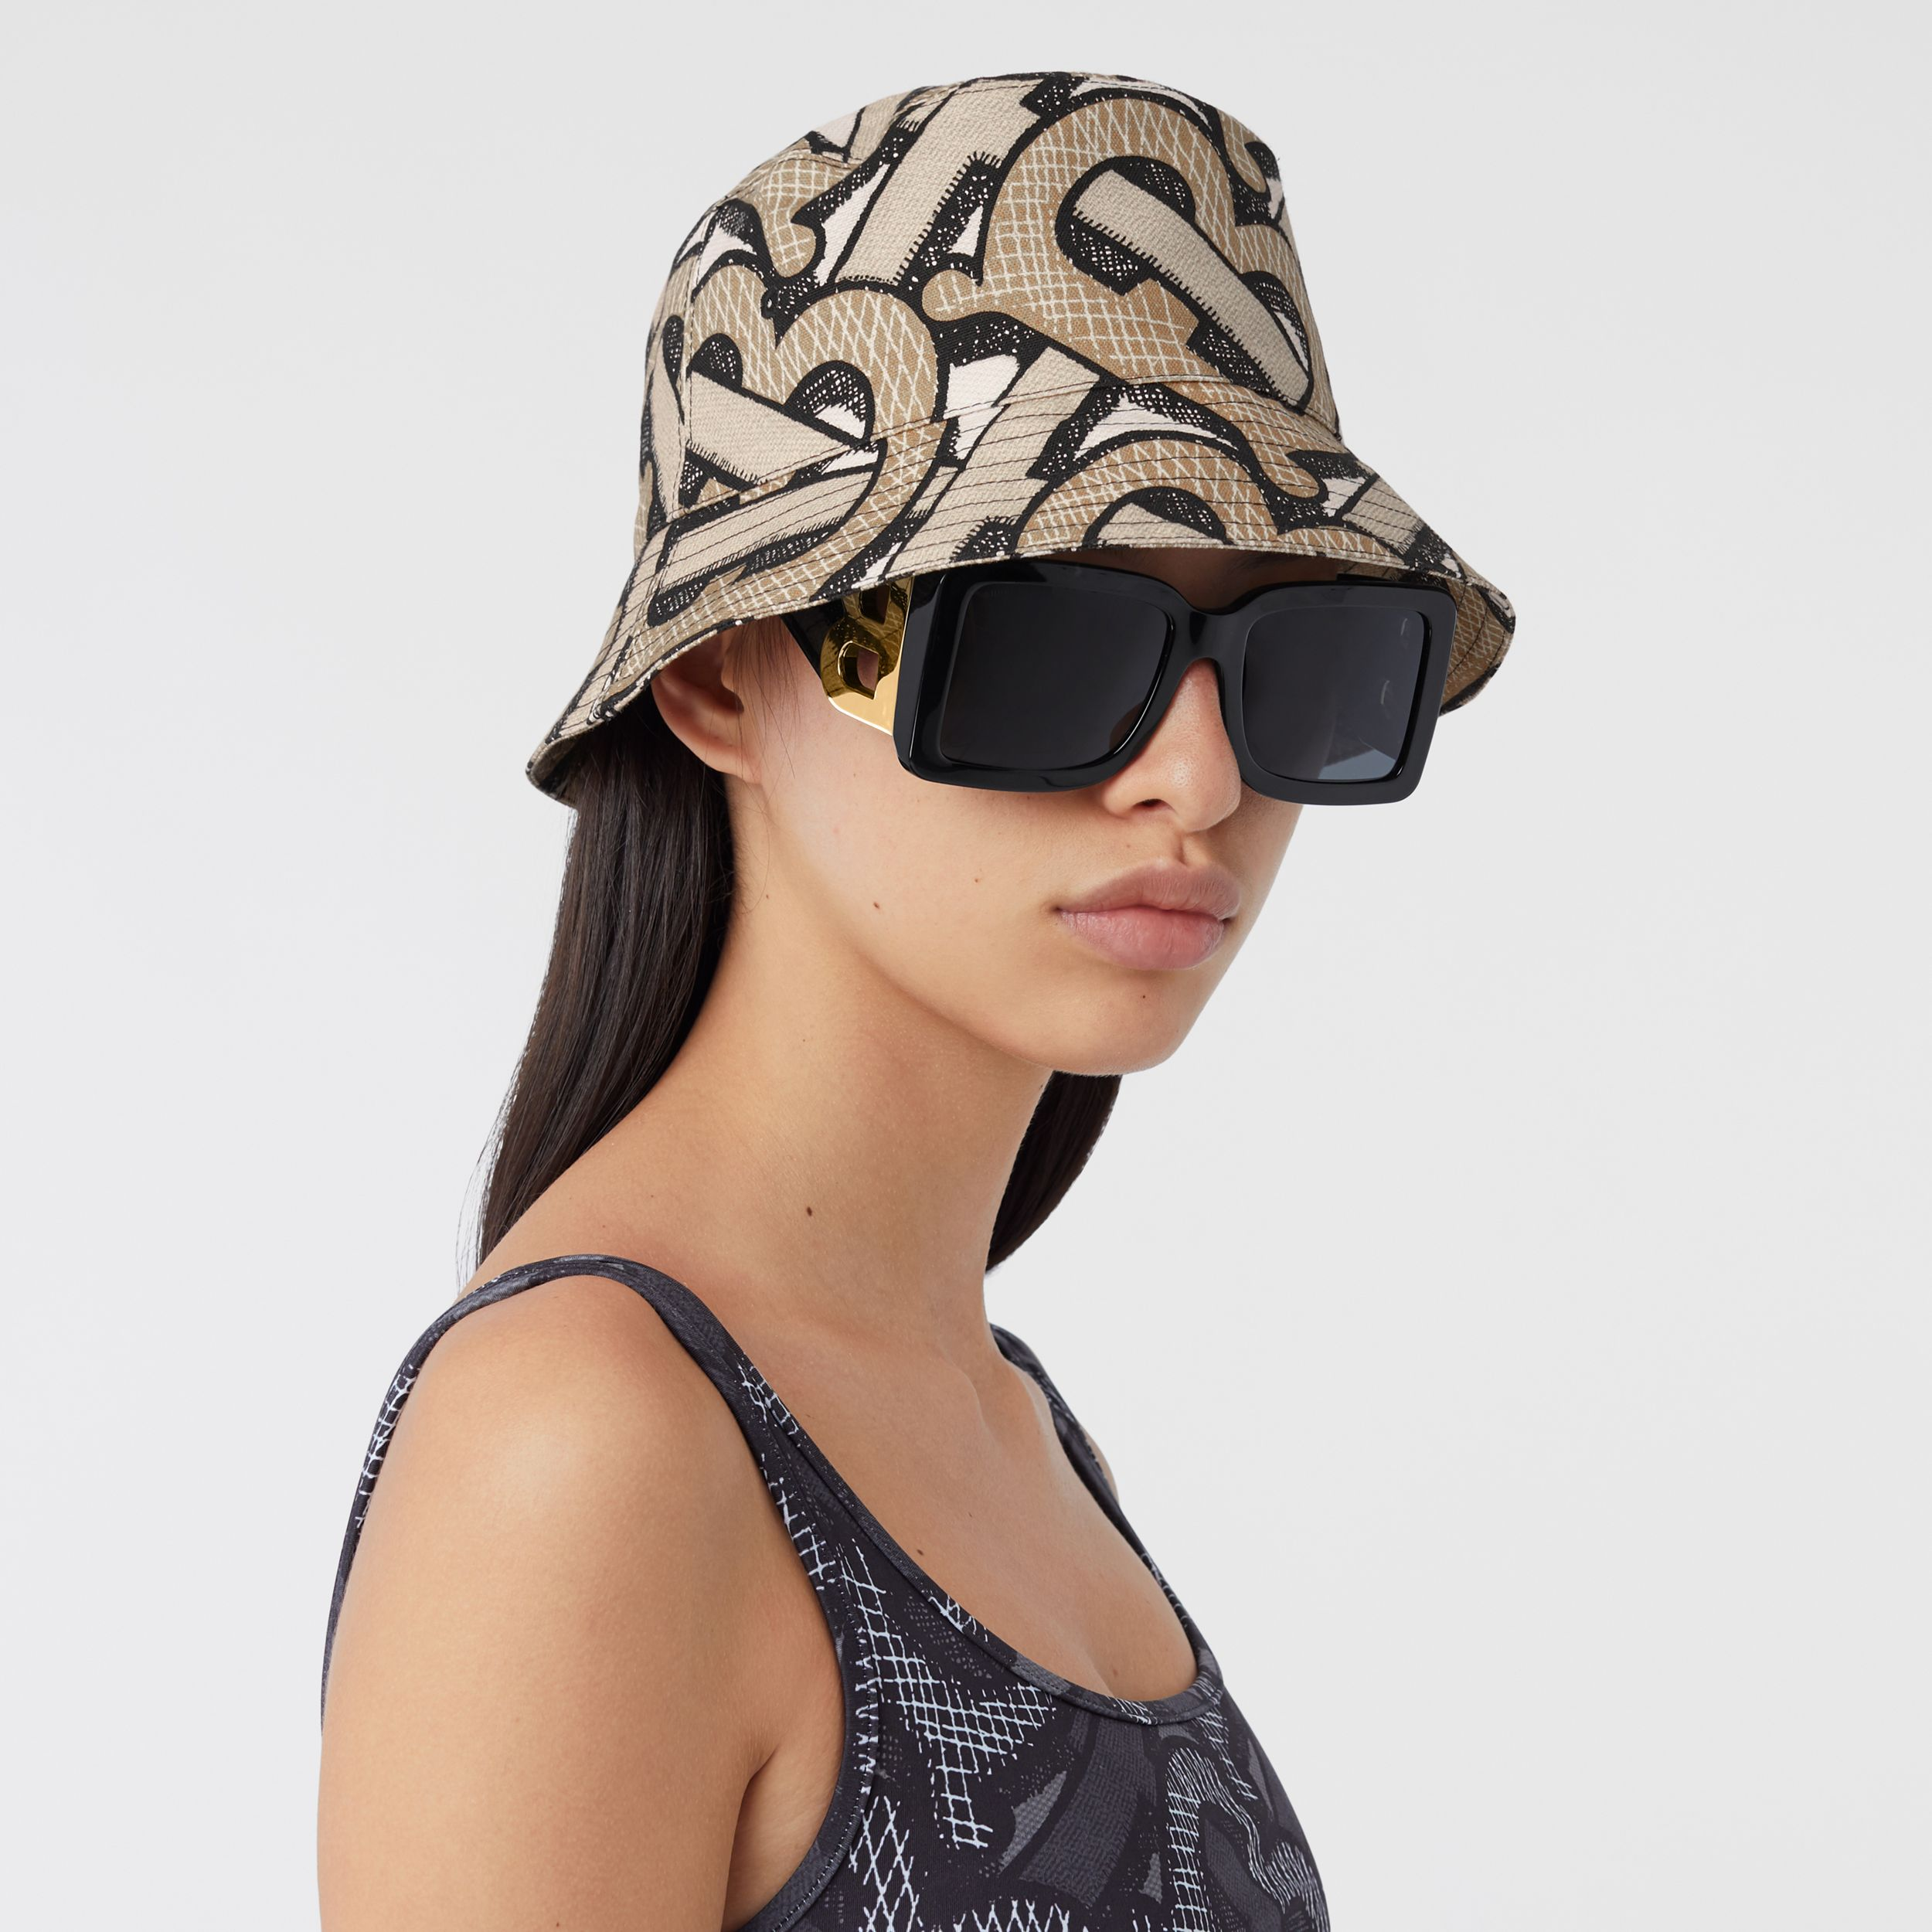 Monogram Print Cotton Canvas Bucket Hat in Dark Beige | Burberry United States - 3